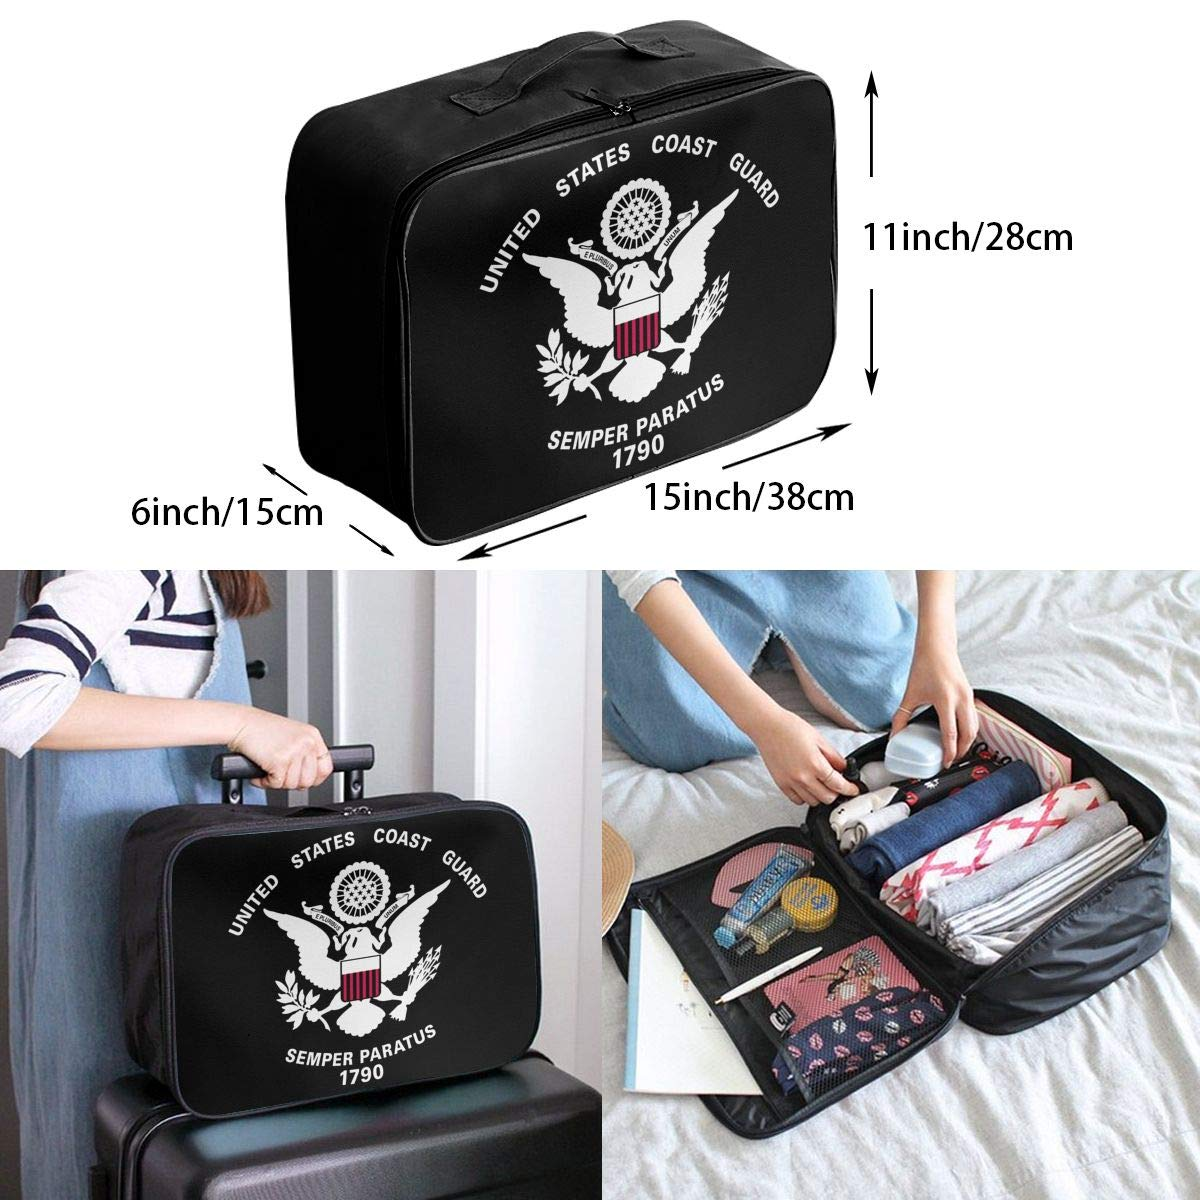 United States Coast Guard 1790 Travel Bag Men Women 3D Print Pattern Gift Portable Waterproof Oxford Cloth Luggage Bag